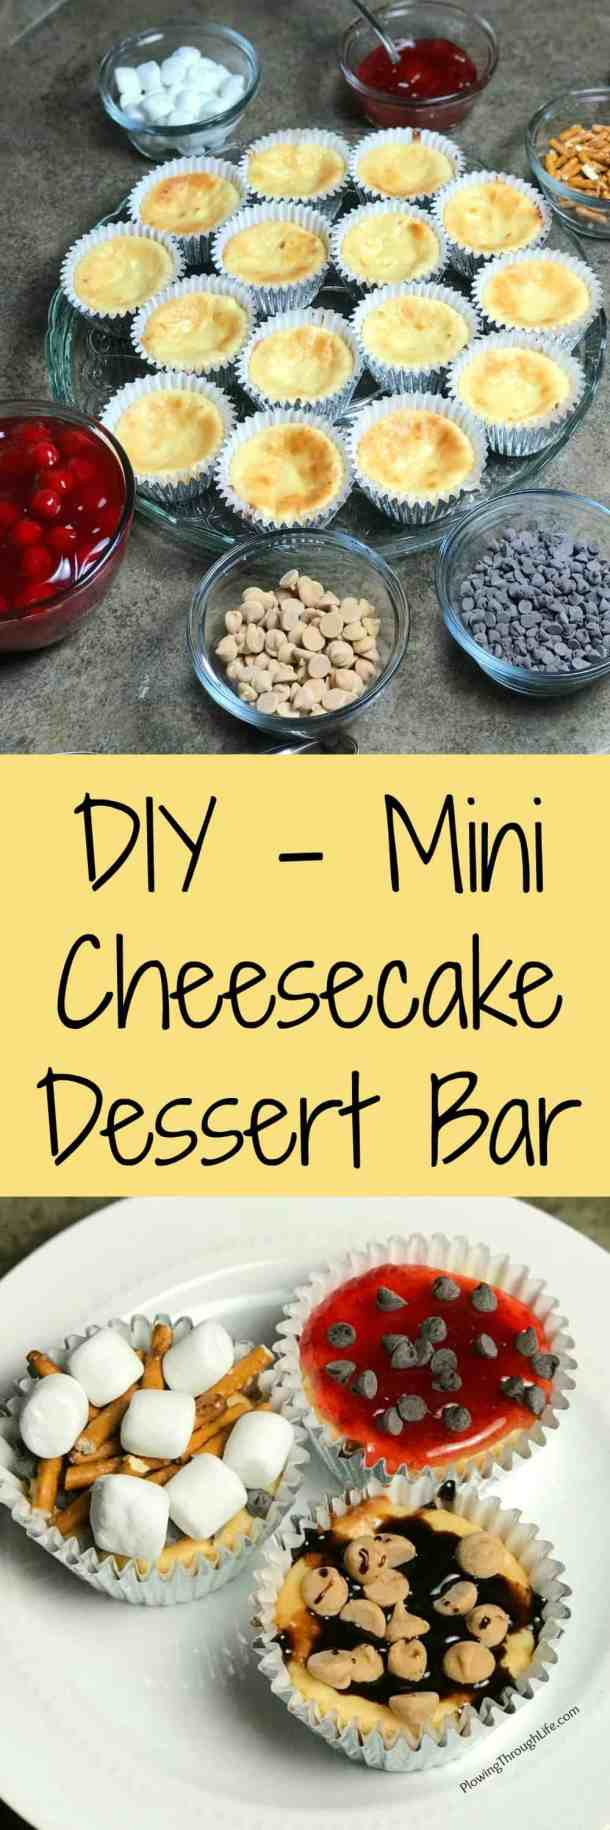 Looking for a fun idea for a dessert bar?  Then try these easy mini individual cheesecakes for a cheesecake bar.    All of our dinner party guests really enjoyed making DIY mini cheesecake desserts!